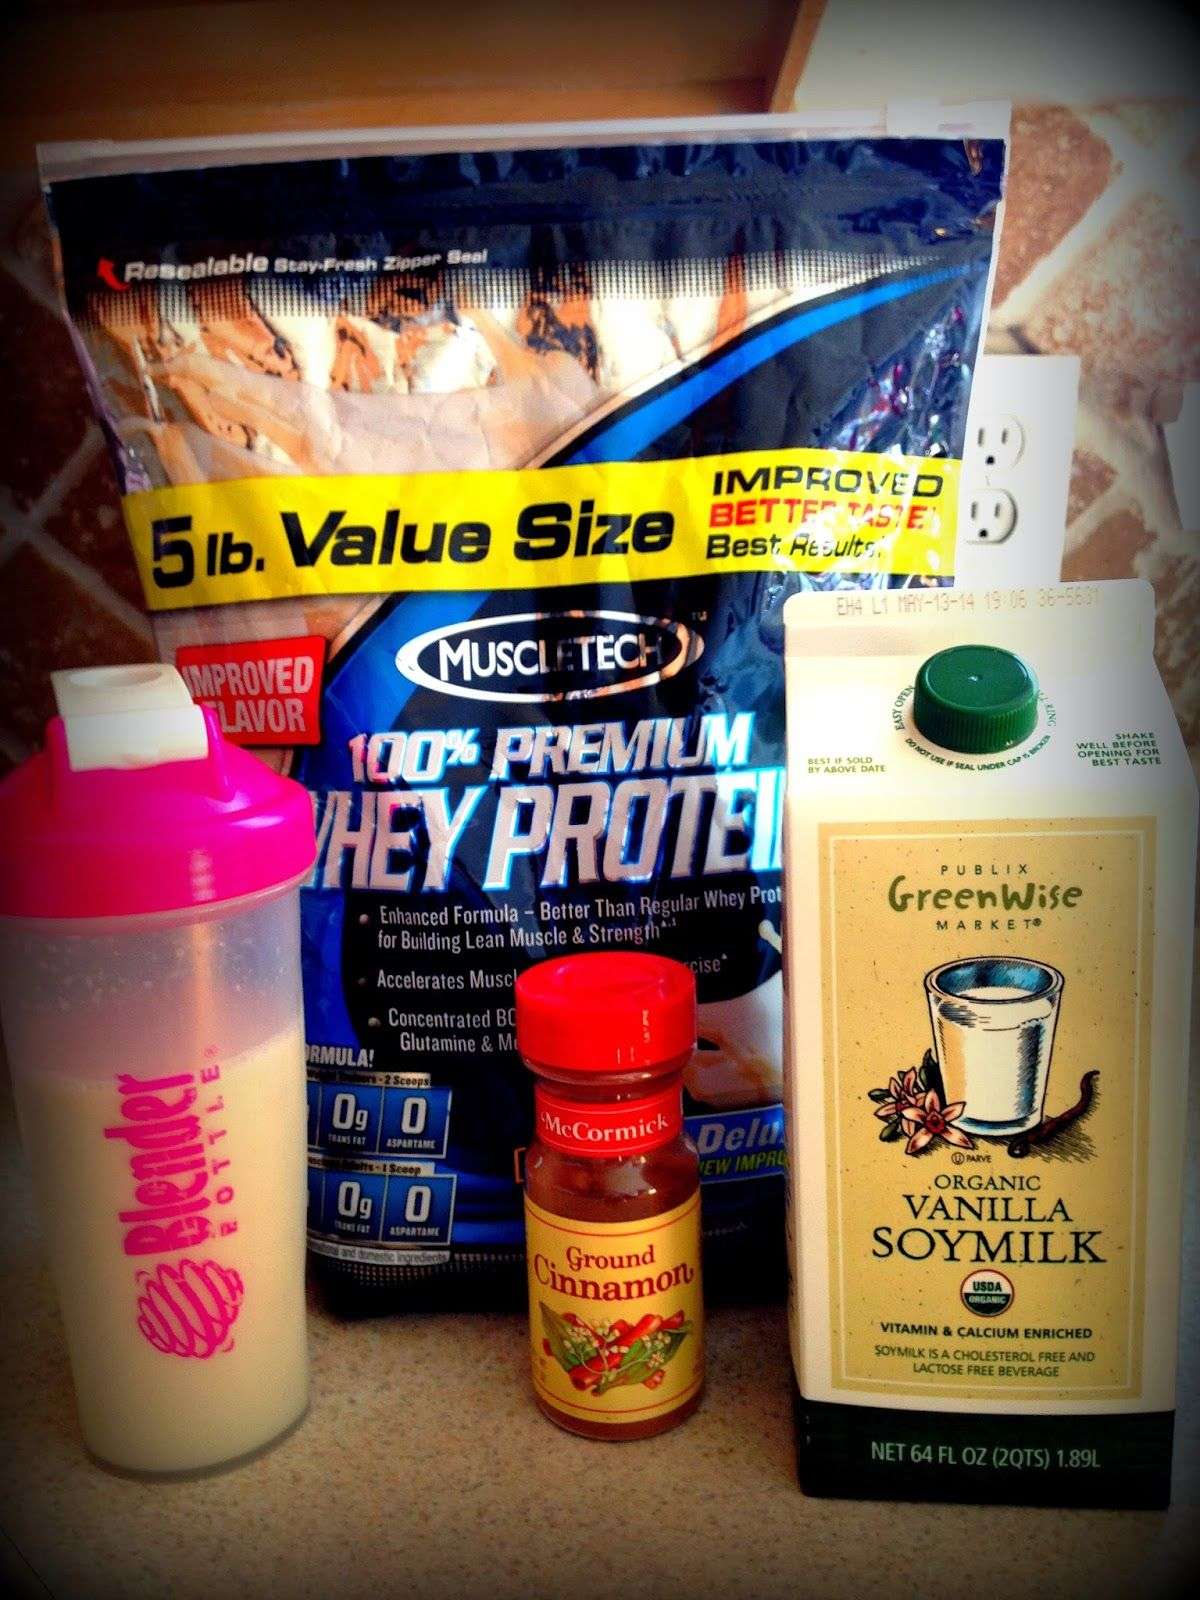 Magic Weight Loss Protein Shake With Soy Milk The Secret Is The